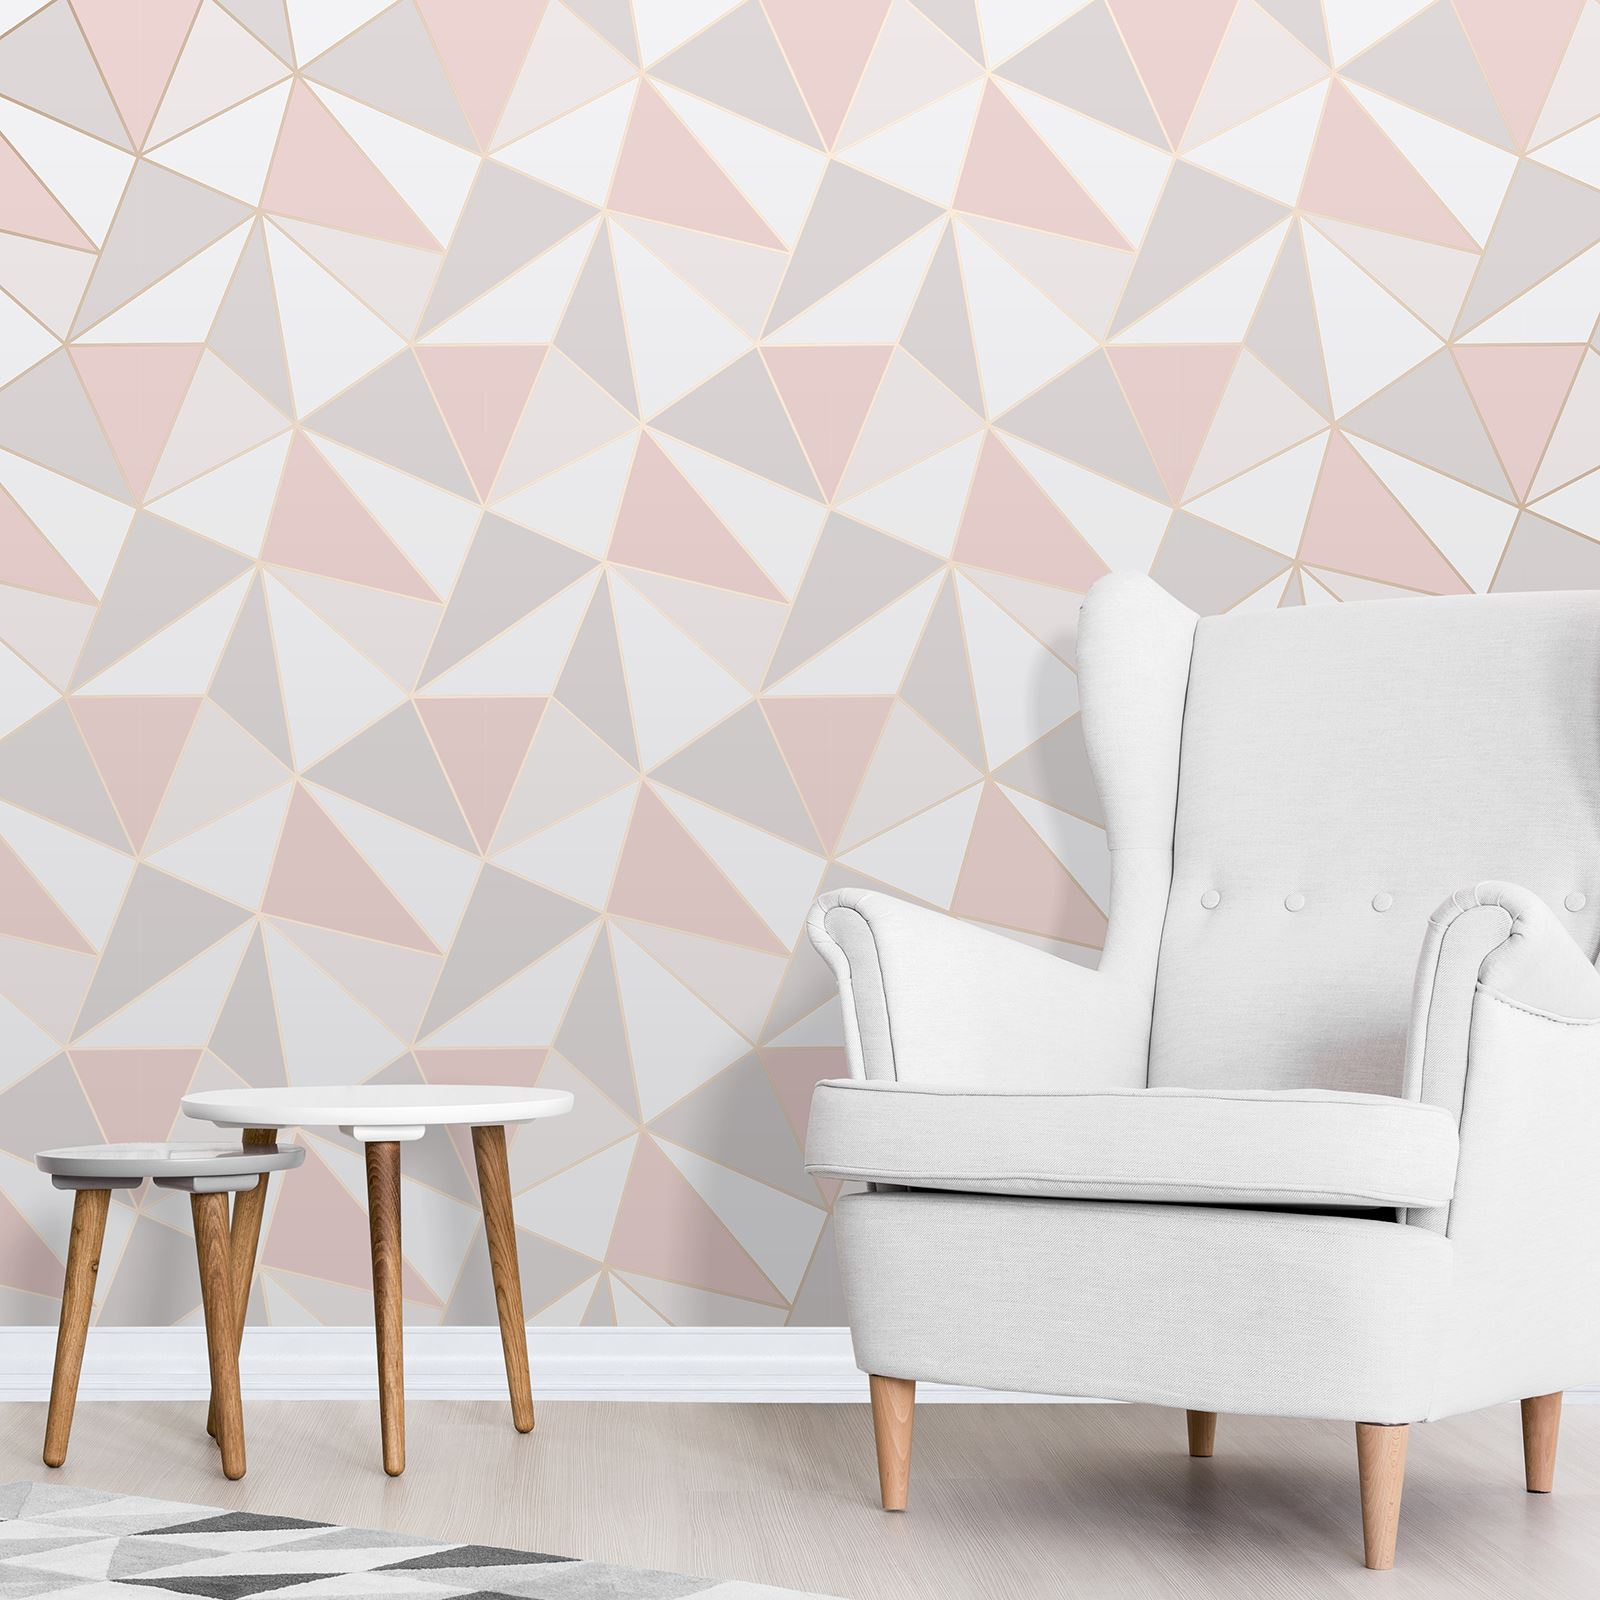 Girls Rose Gold Wallpaper: APEX GEOMETRIC WALLPAPER ROSE GOLD / PINK